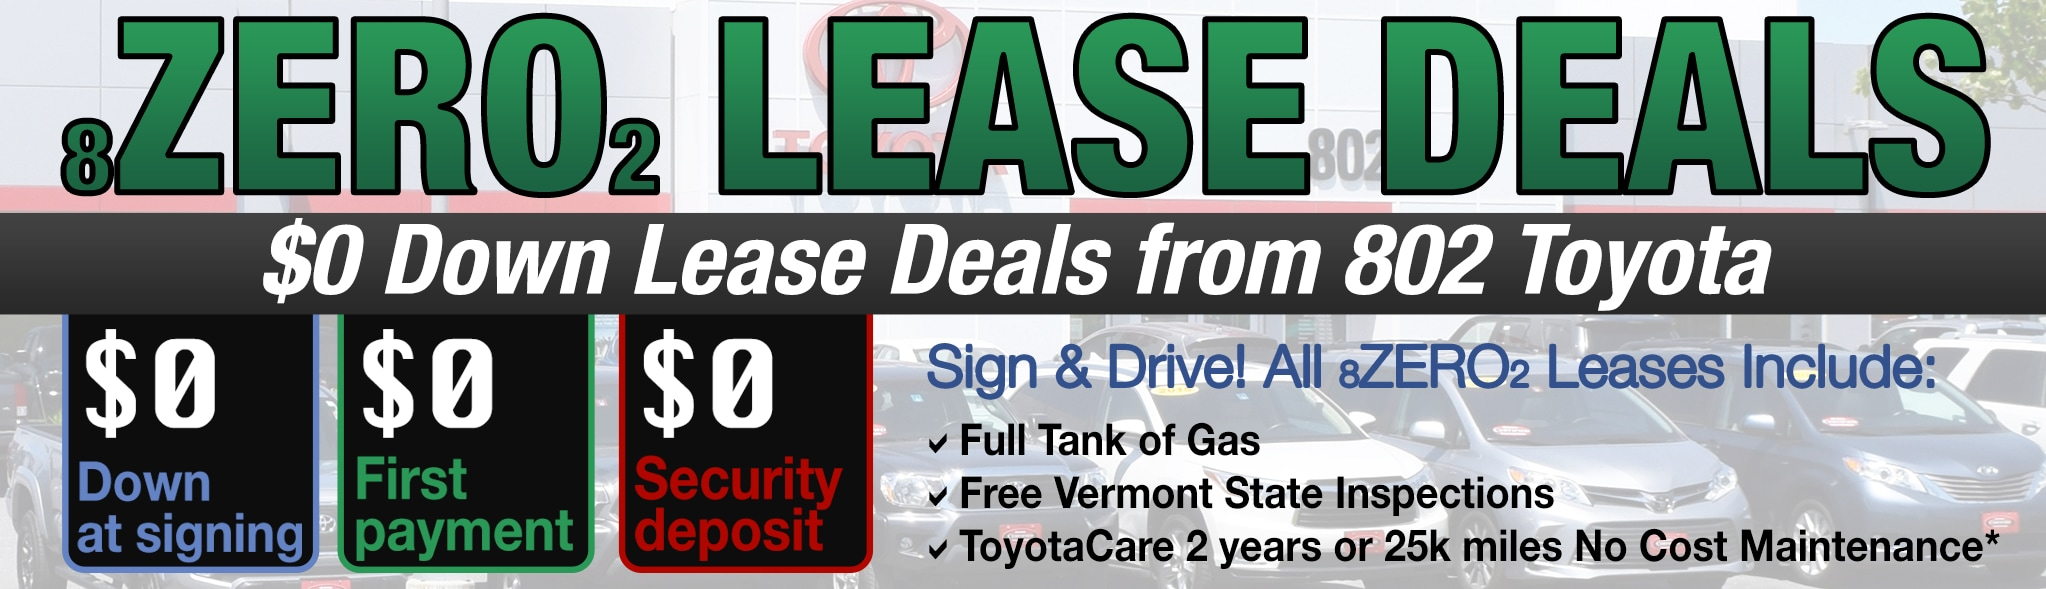 0 Down Lease >> Zero Down Toyota Lease Deals 802 Toyota Of Vermont